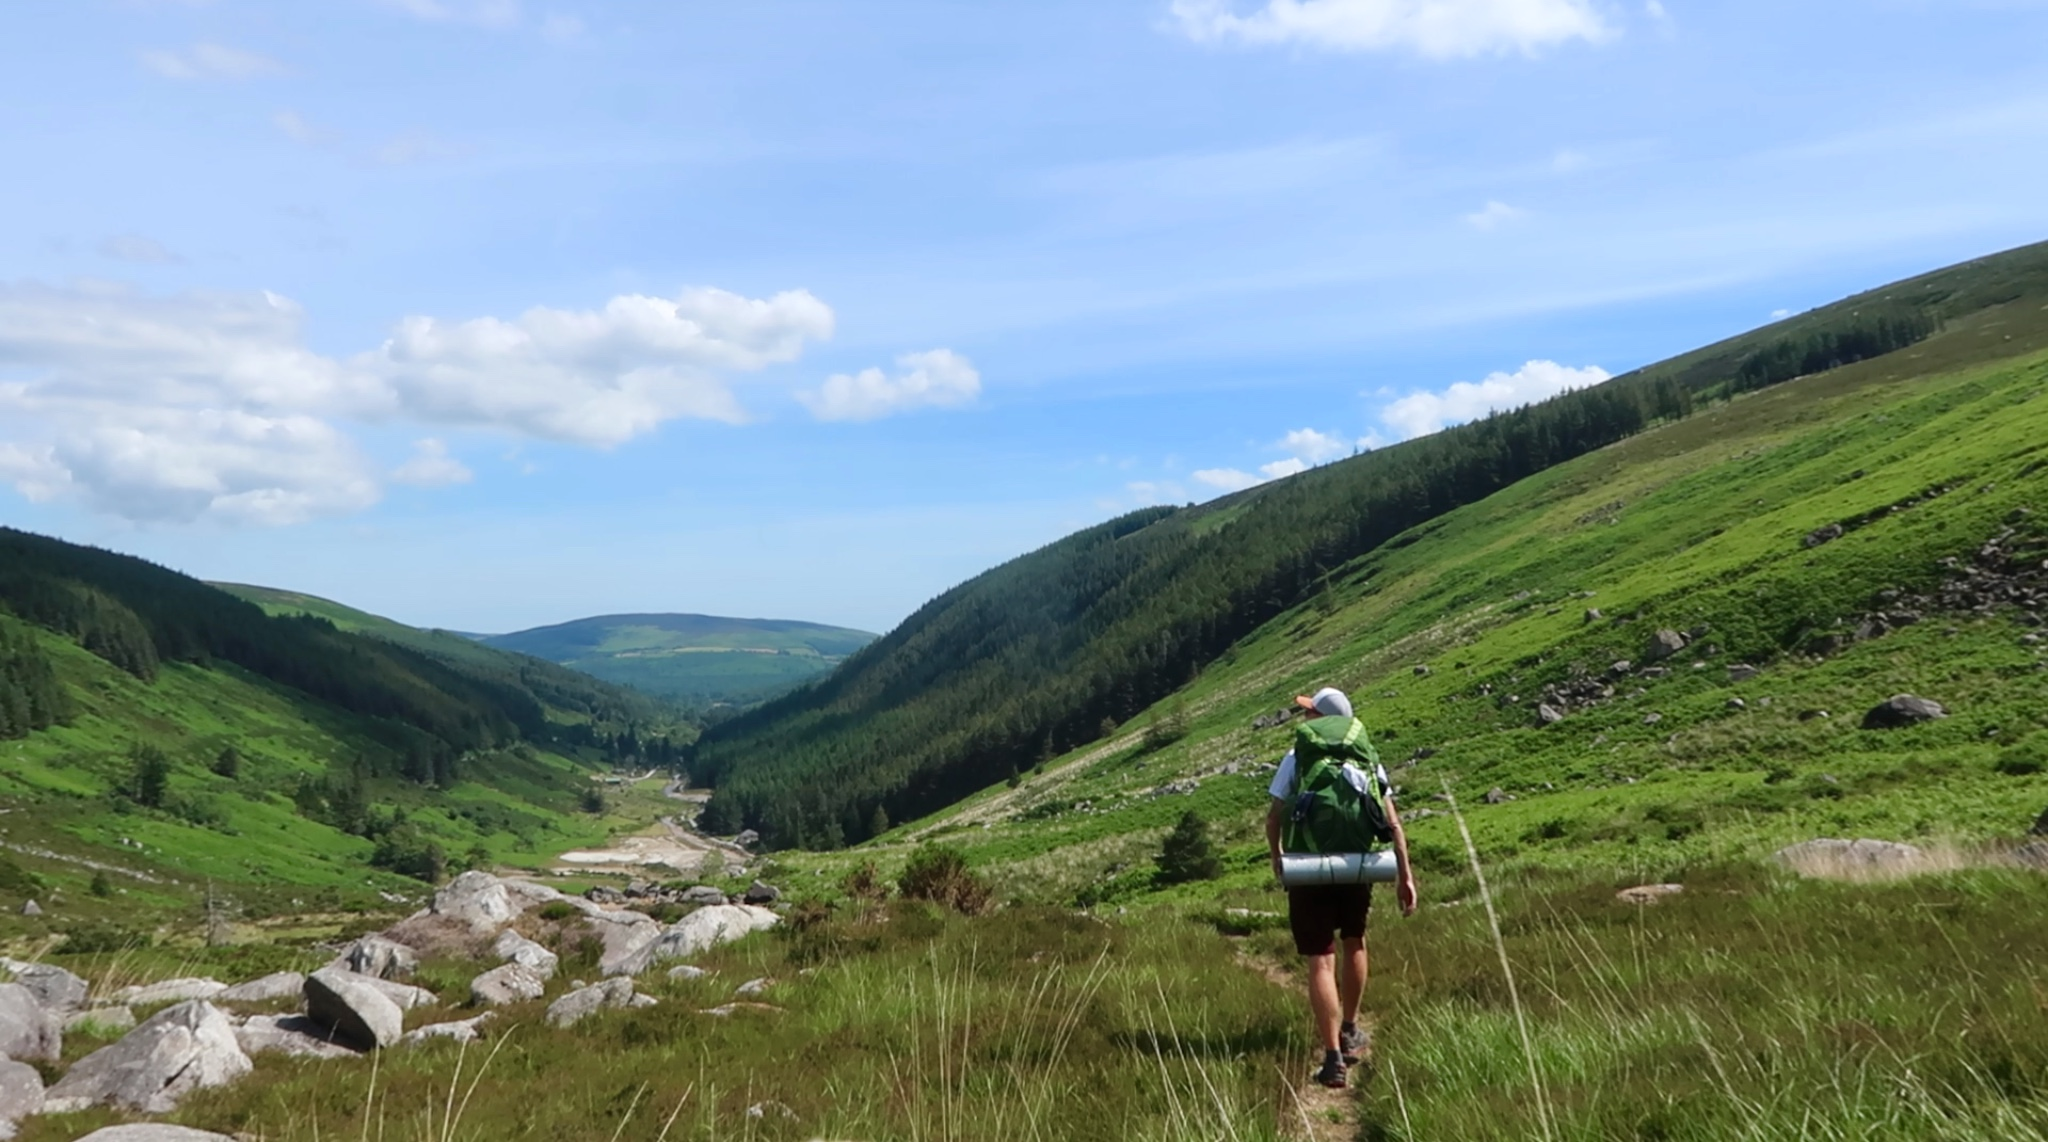 No Experience? 5 Tips for First Time Hikers